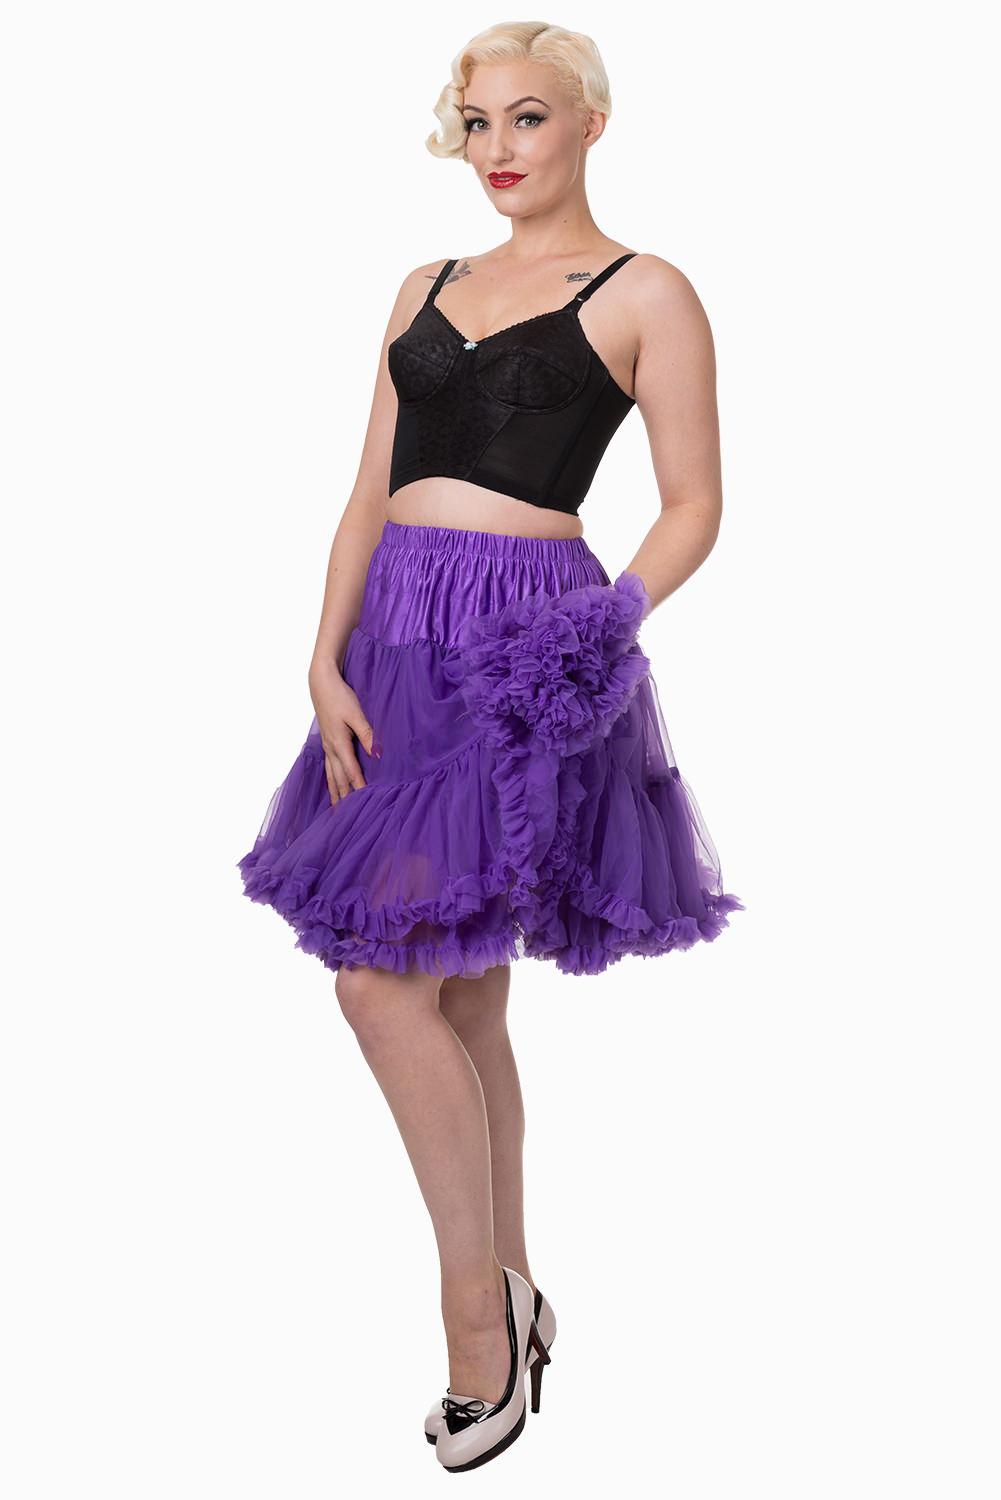 Banned Retro 50s Walkabout Purple Petticoat